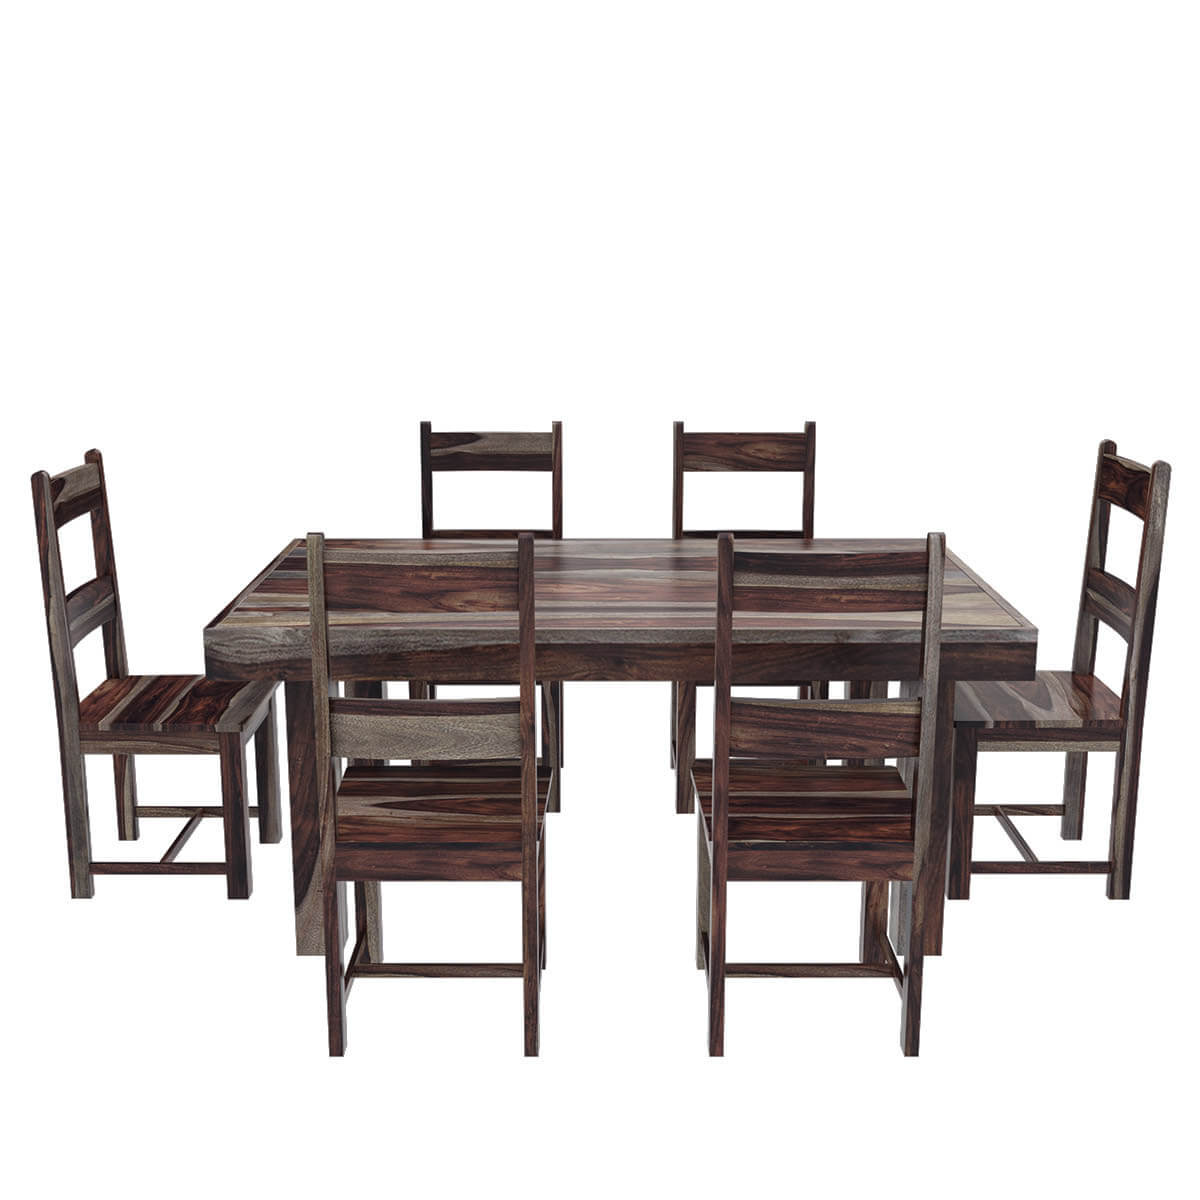 Frisco Modern Solid Wood Casual Rustic Dining Room Table And Chair Set